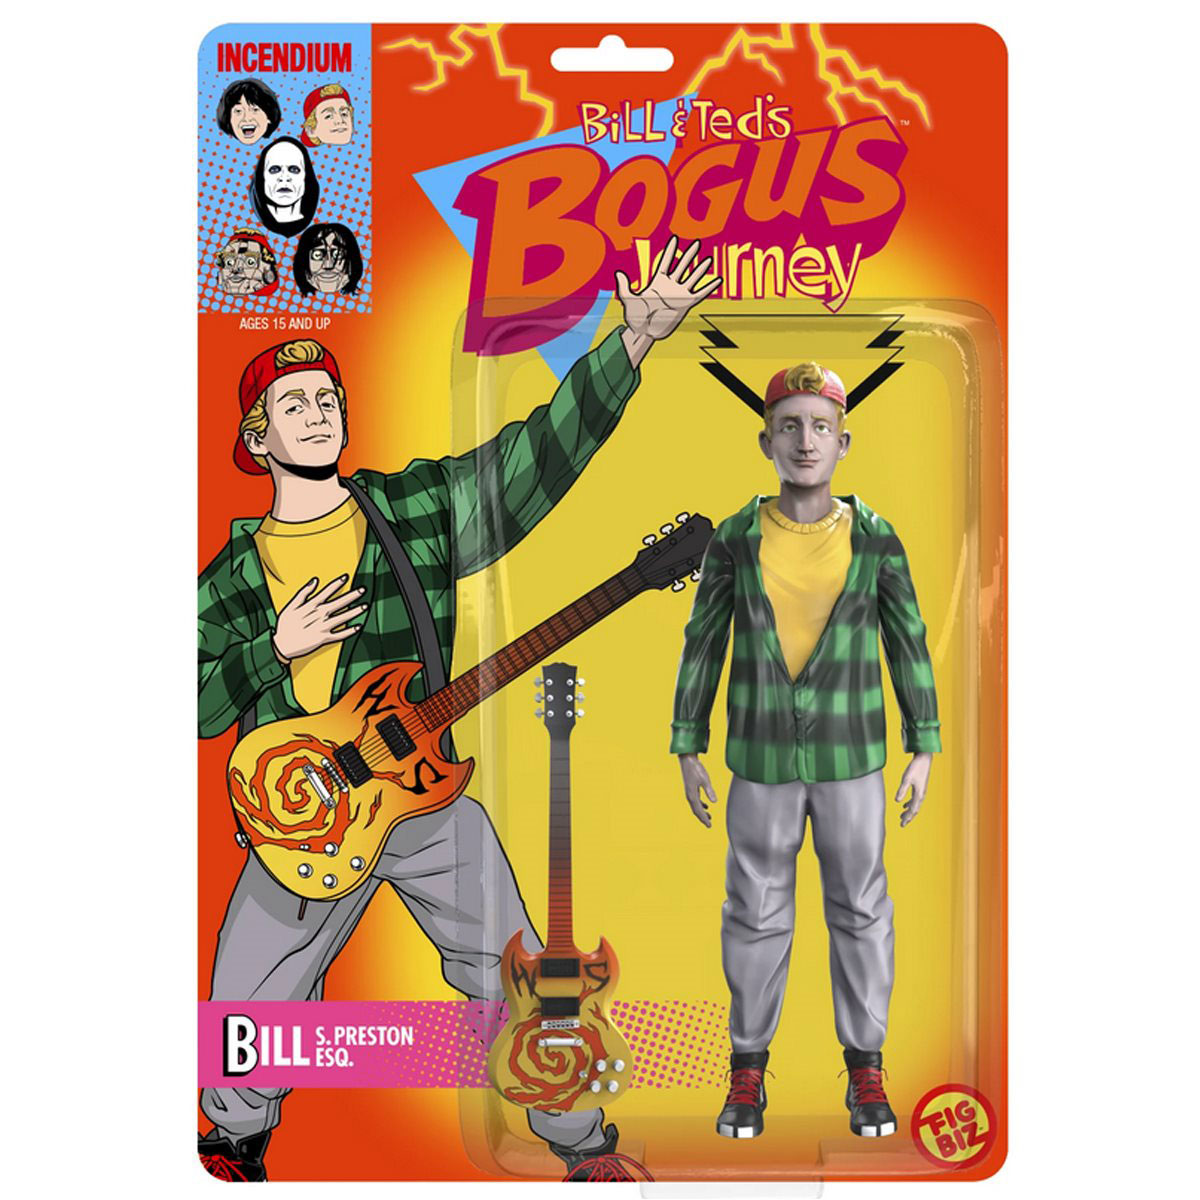 bill-and-teds-bogus-journey-bill-s-preston-figbiz-action-figure-1